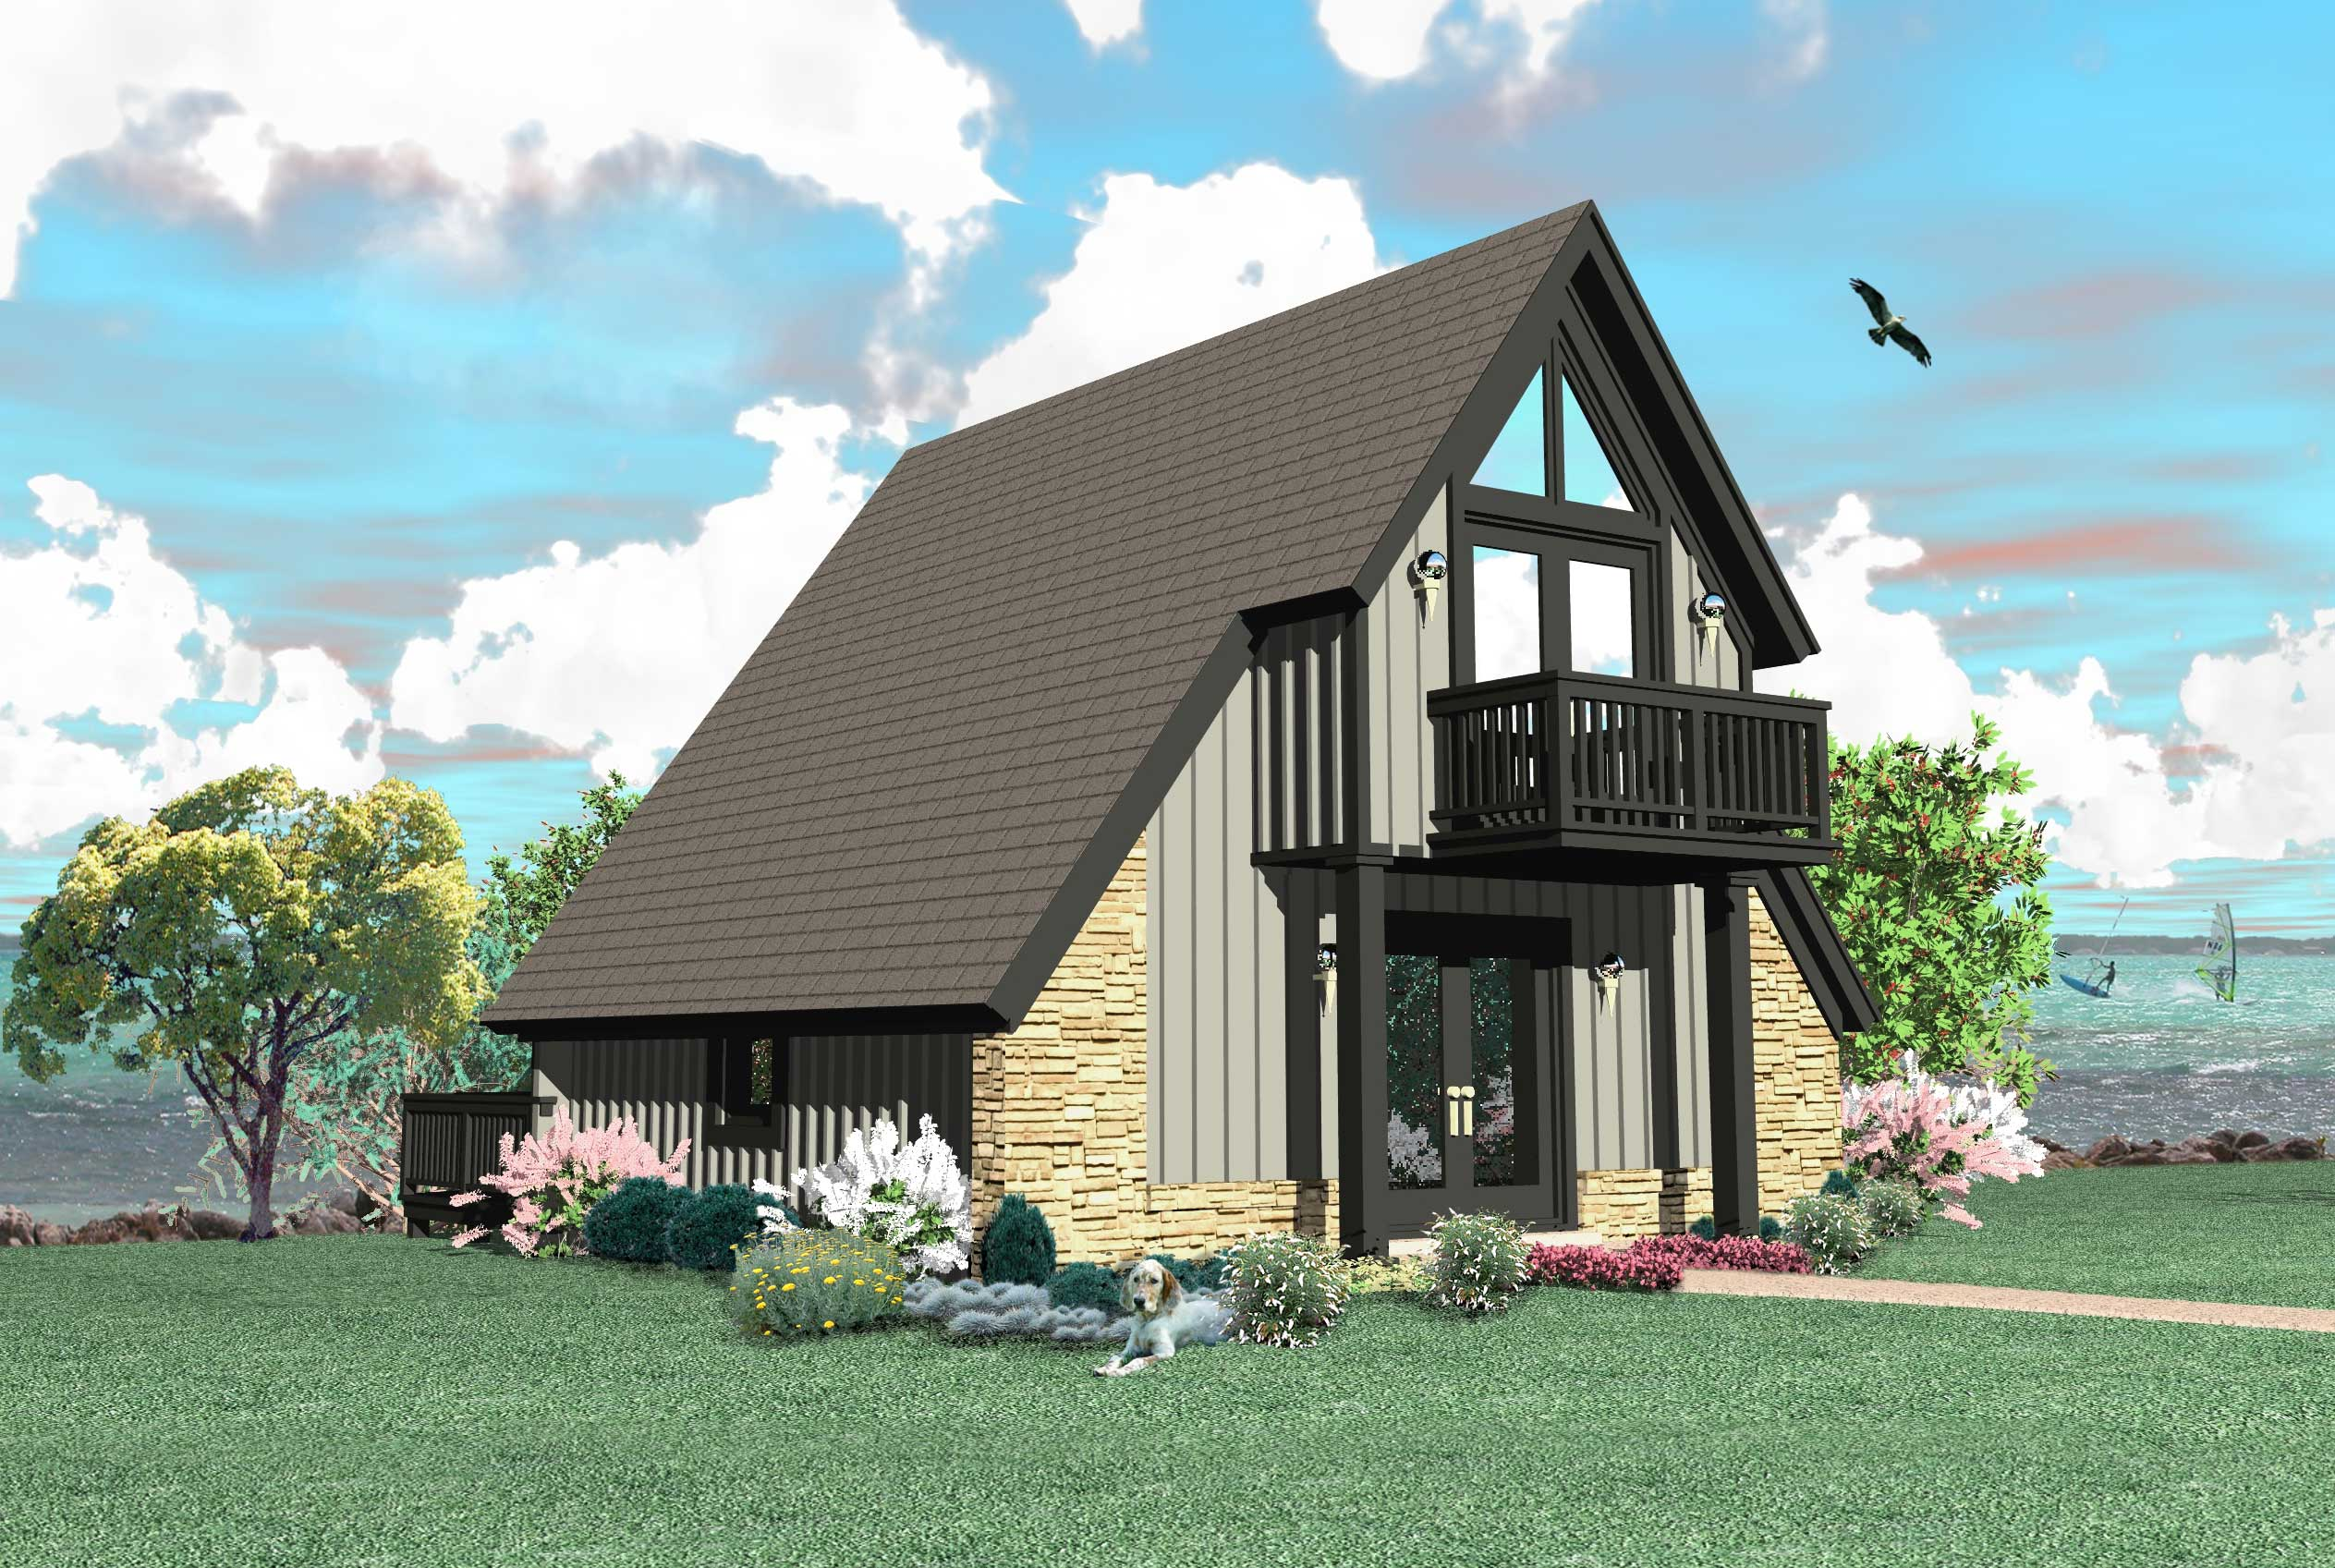 a frame house plans with loft a frame house plans home design su b0500 500 48 t rv nwd 26342